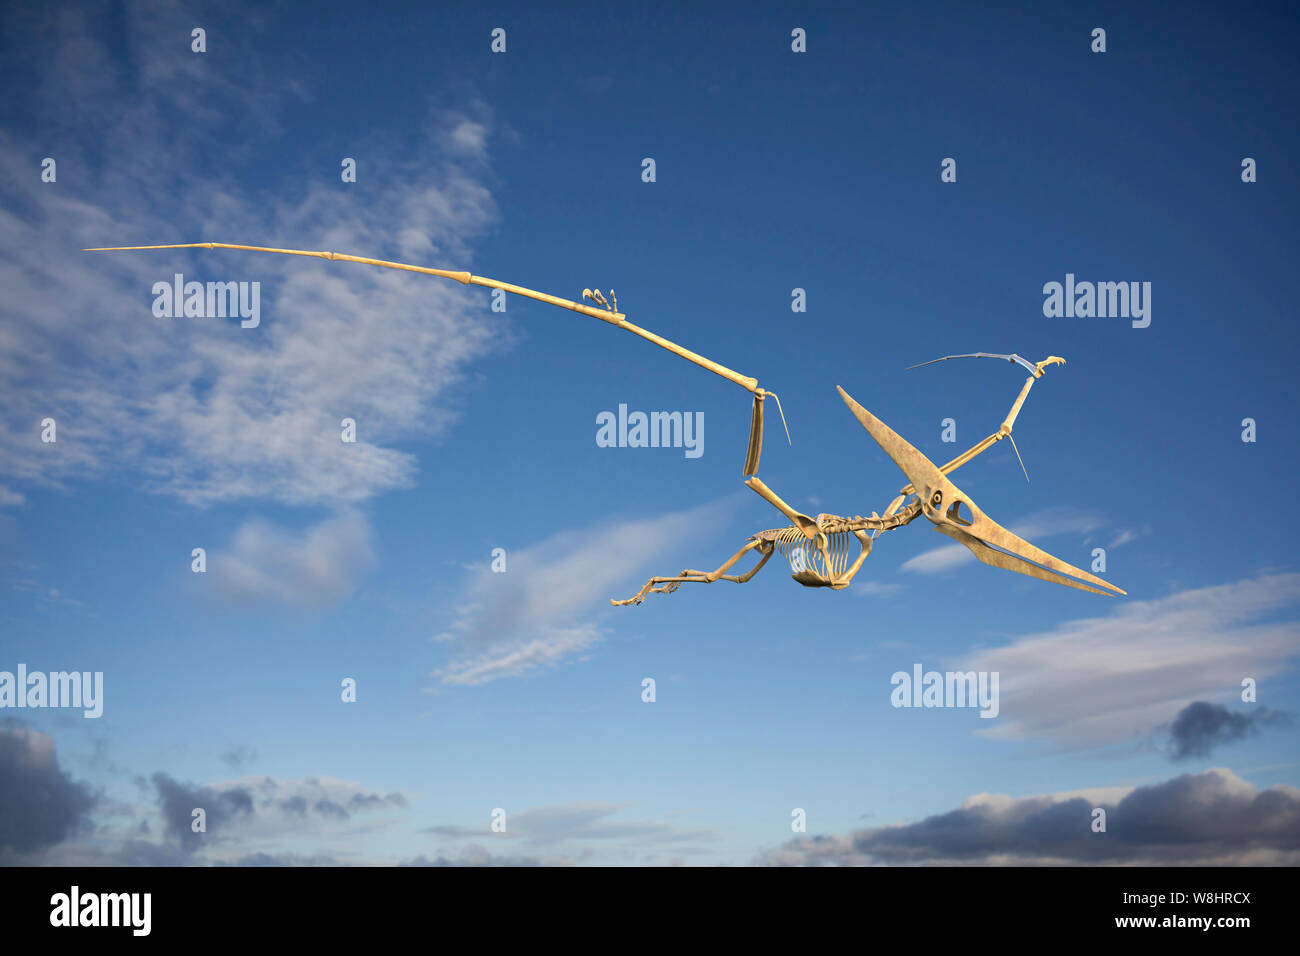 Pteranodon skeletal structure, illustration. These flying reptiles lived during the late cretaceous period, about 86-85 million years ago. Stock Photo